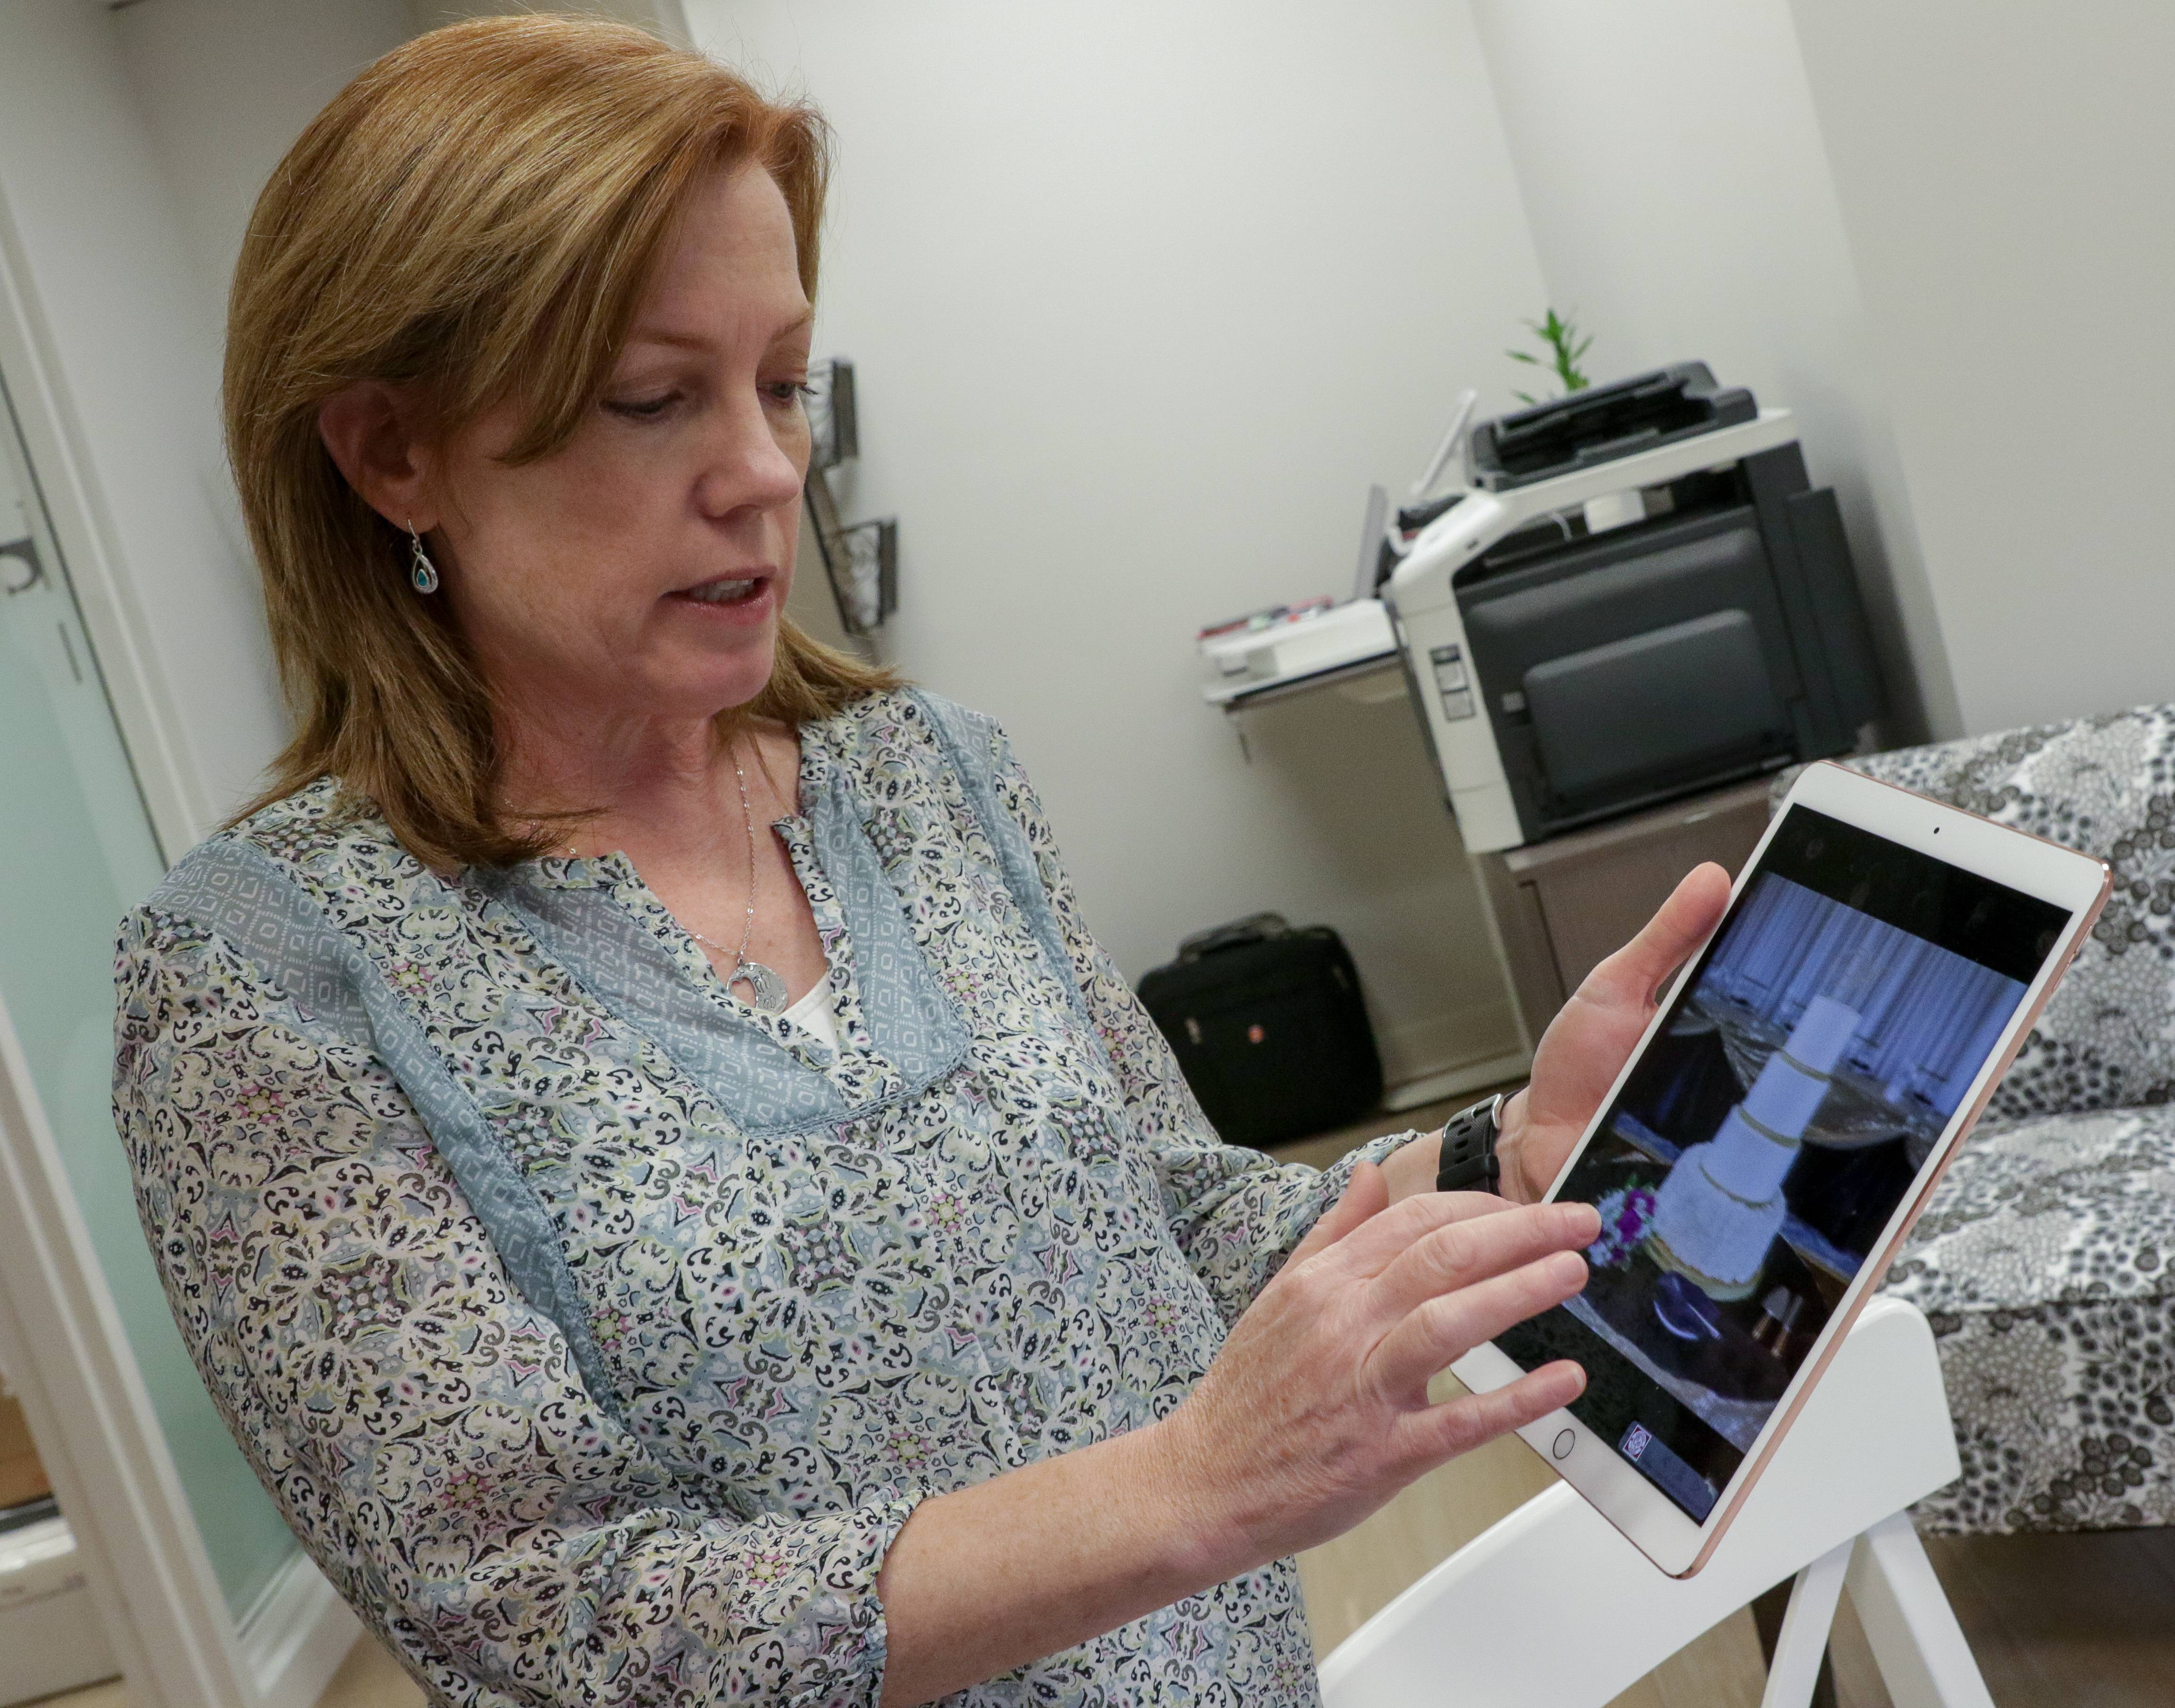 Beth Fahey of Creative Cakes Design Studio in Naperville uses an iPad and a TV screen to display social media photos of cakes her customers provide as inspiration and then to design her own creations. The downtown Naperville design studio opened last week.